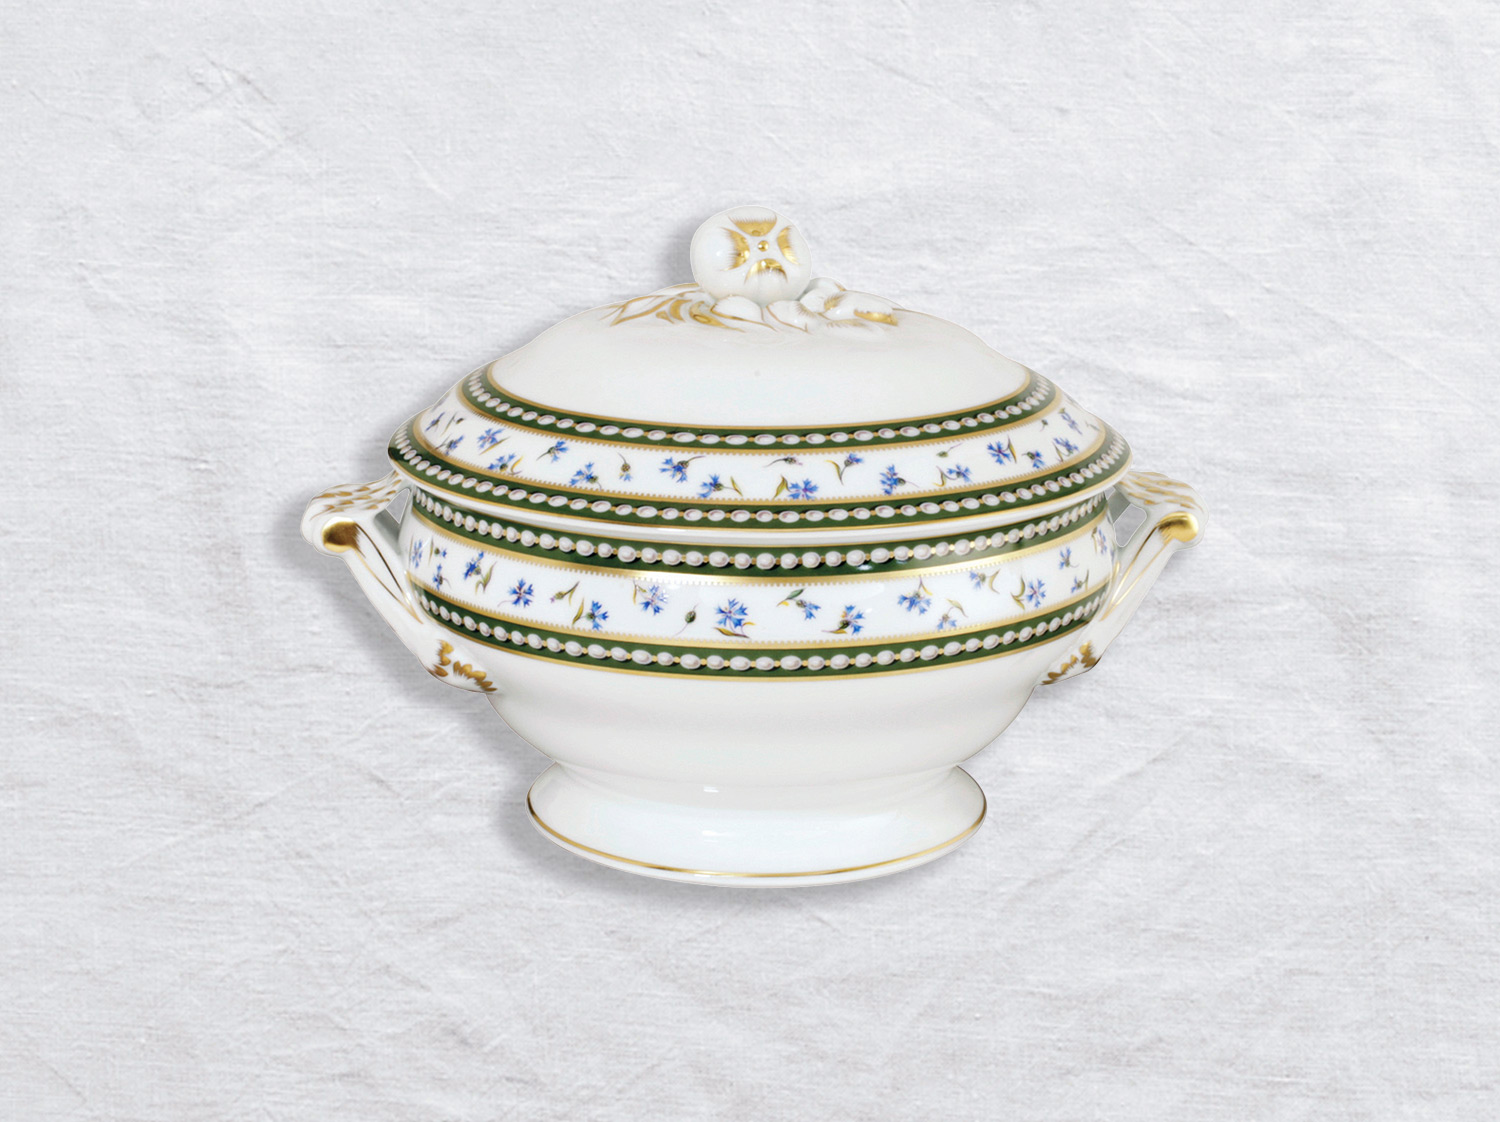 Pot à oilles (soupière) 2,2 L en porcelaine de la collection Marie-antoinette Bernardaud